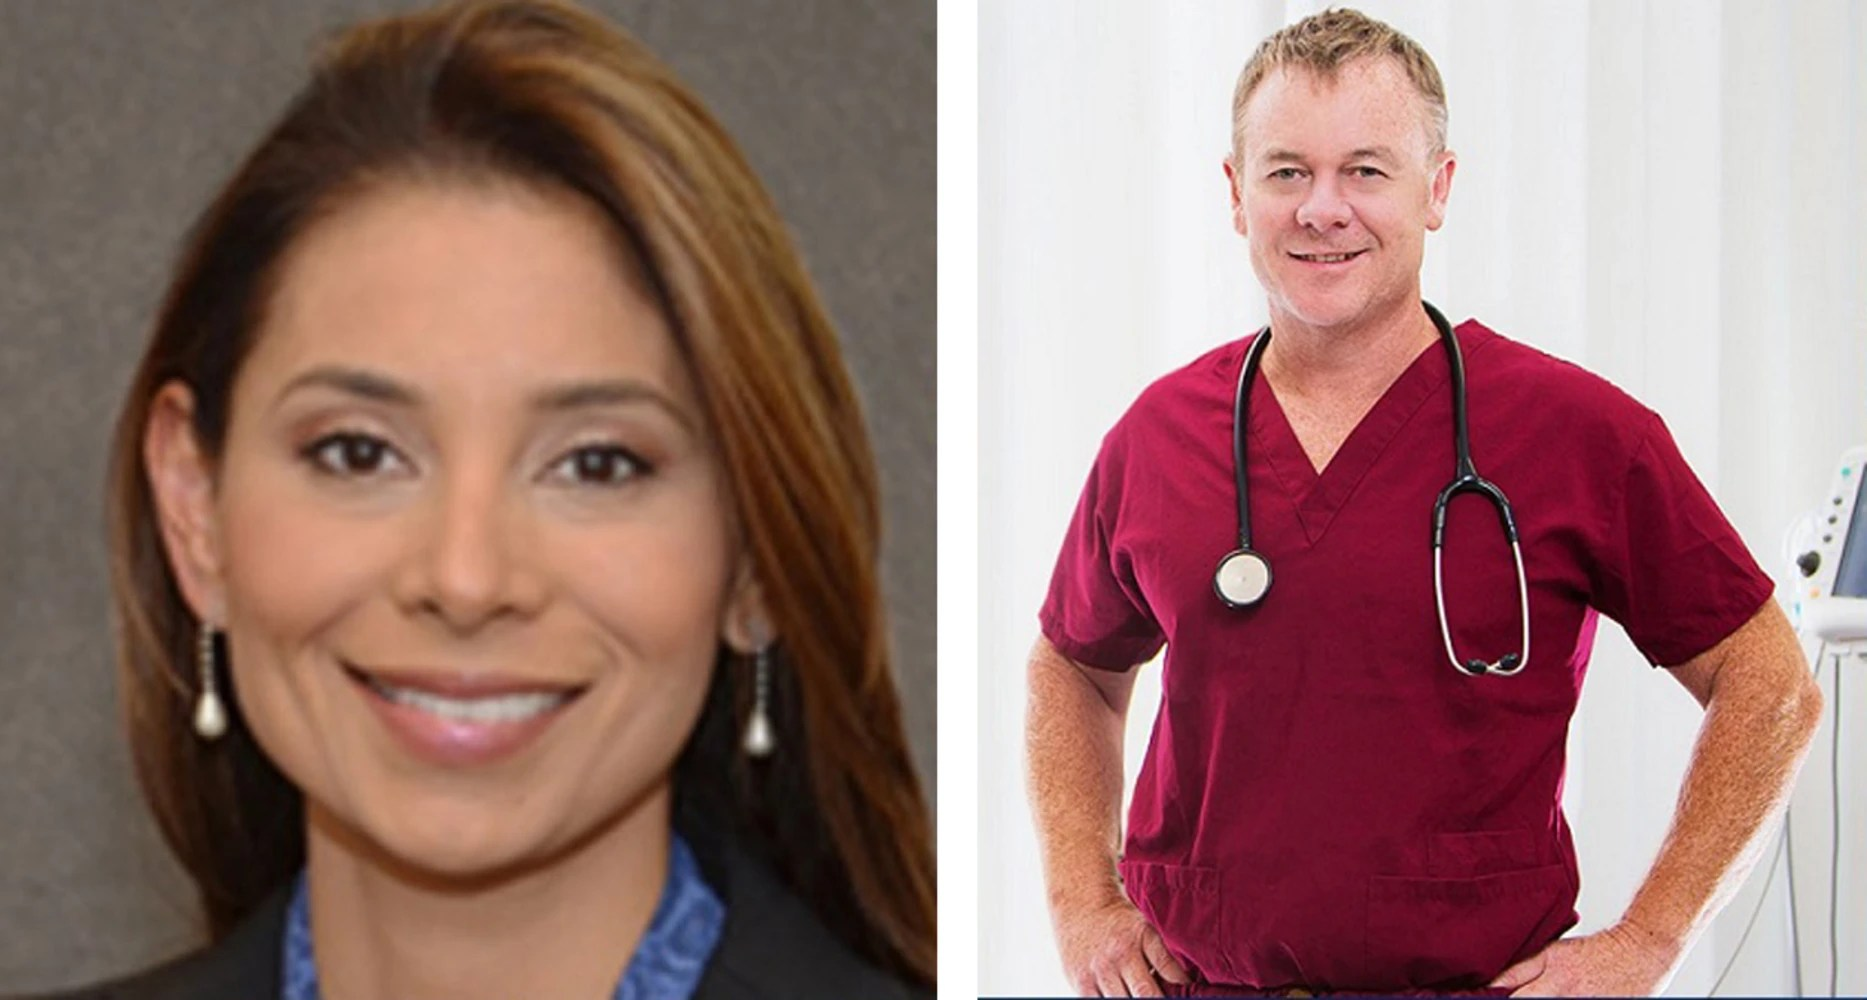 Engaged Boston Doctors Found Slain in Luxury Condo